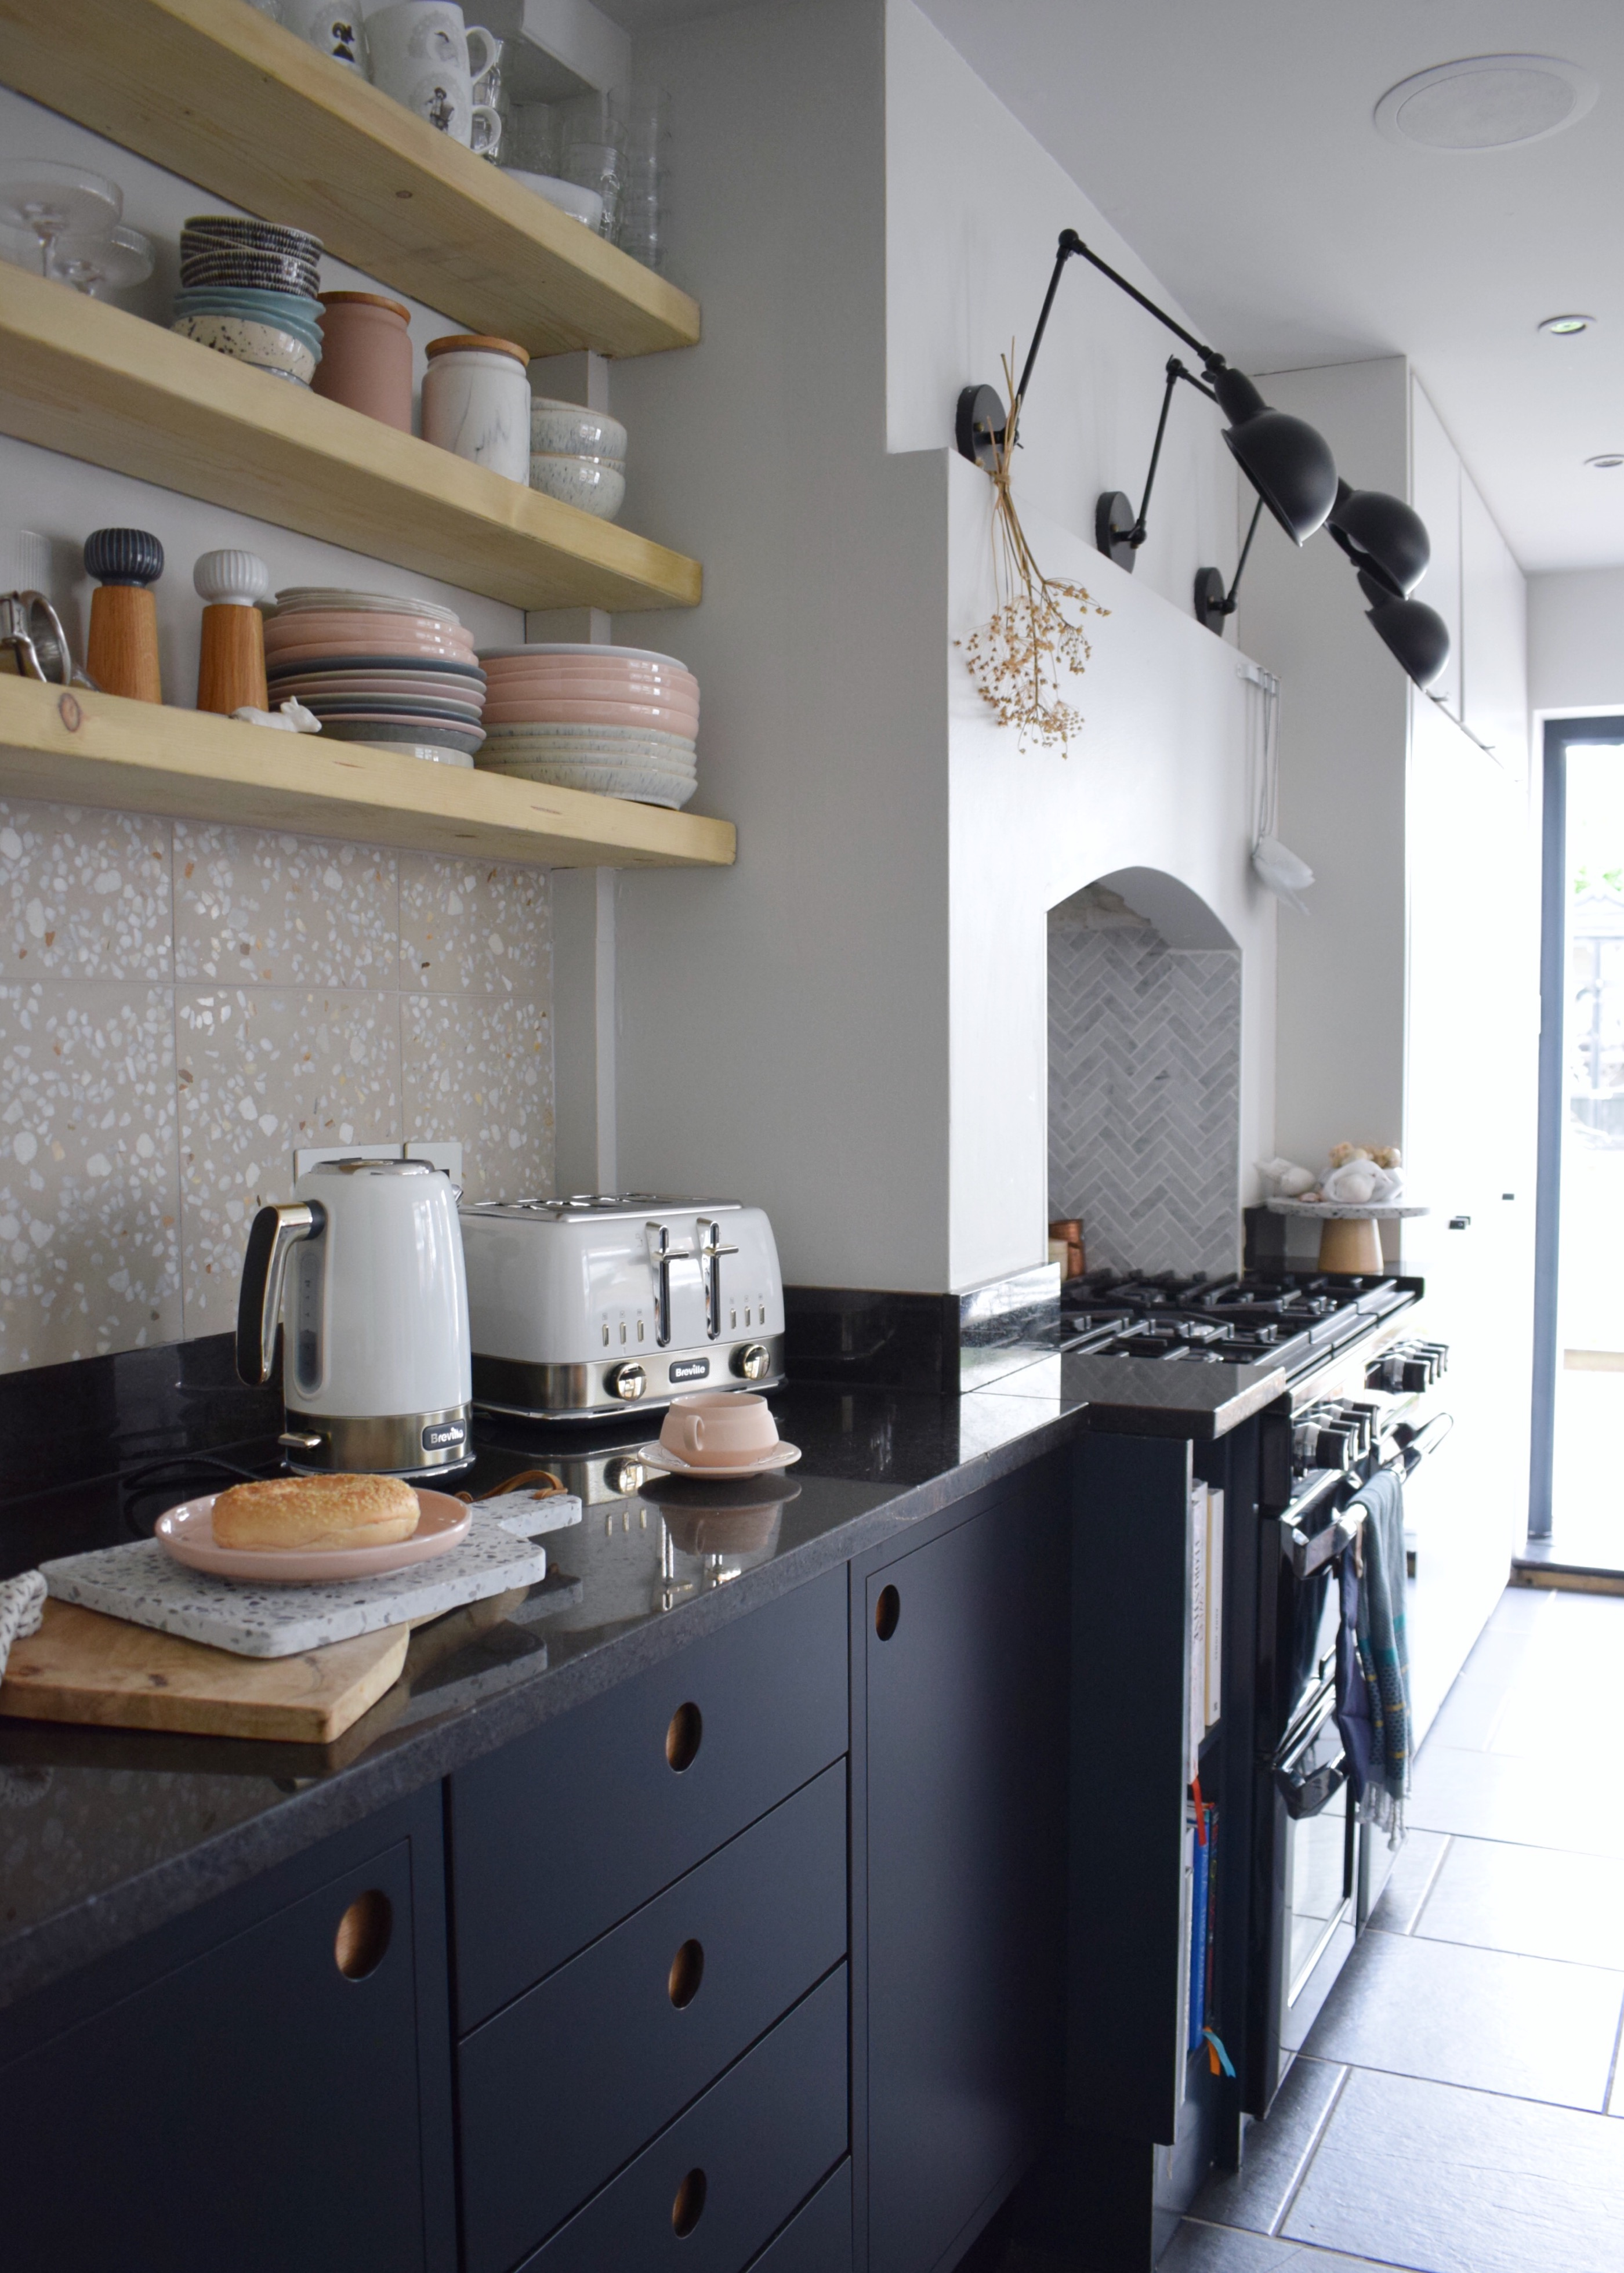 New York Breakfast Collection from Breville